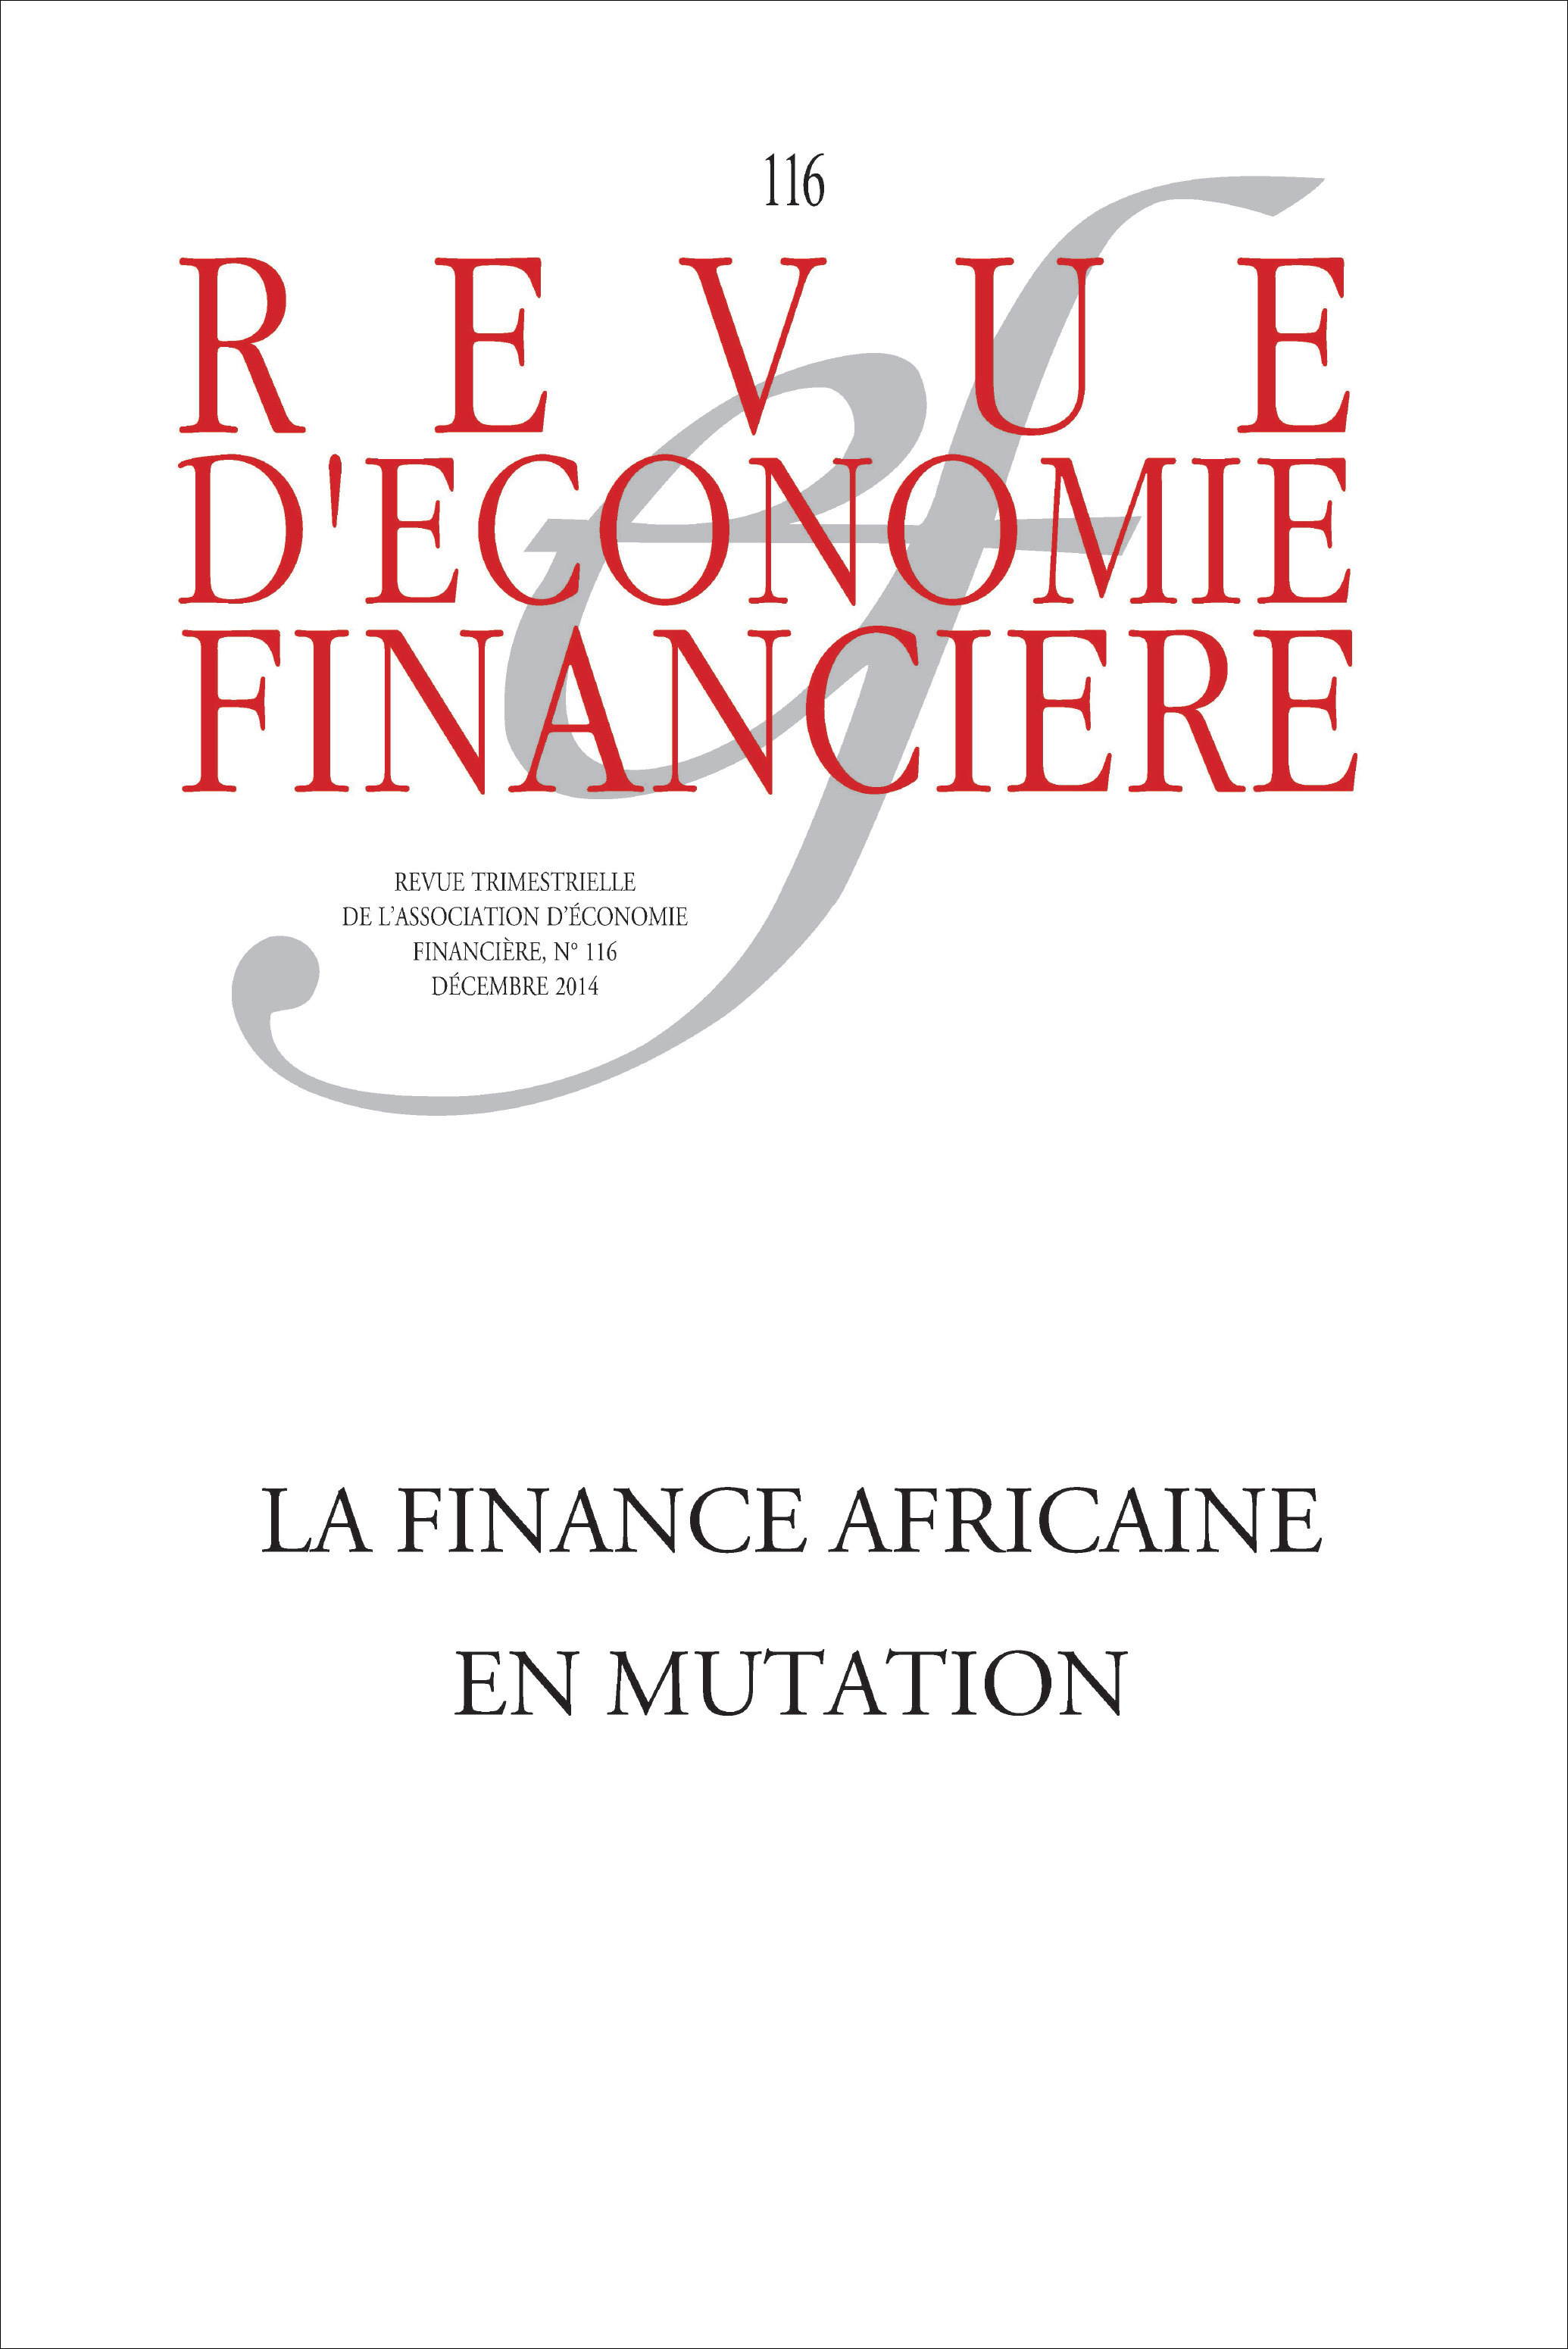 Revue D'Economie Financiere La finance africaine en mutation